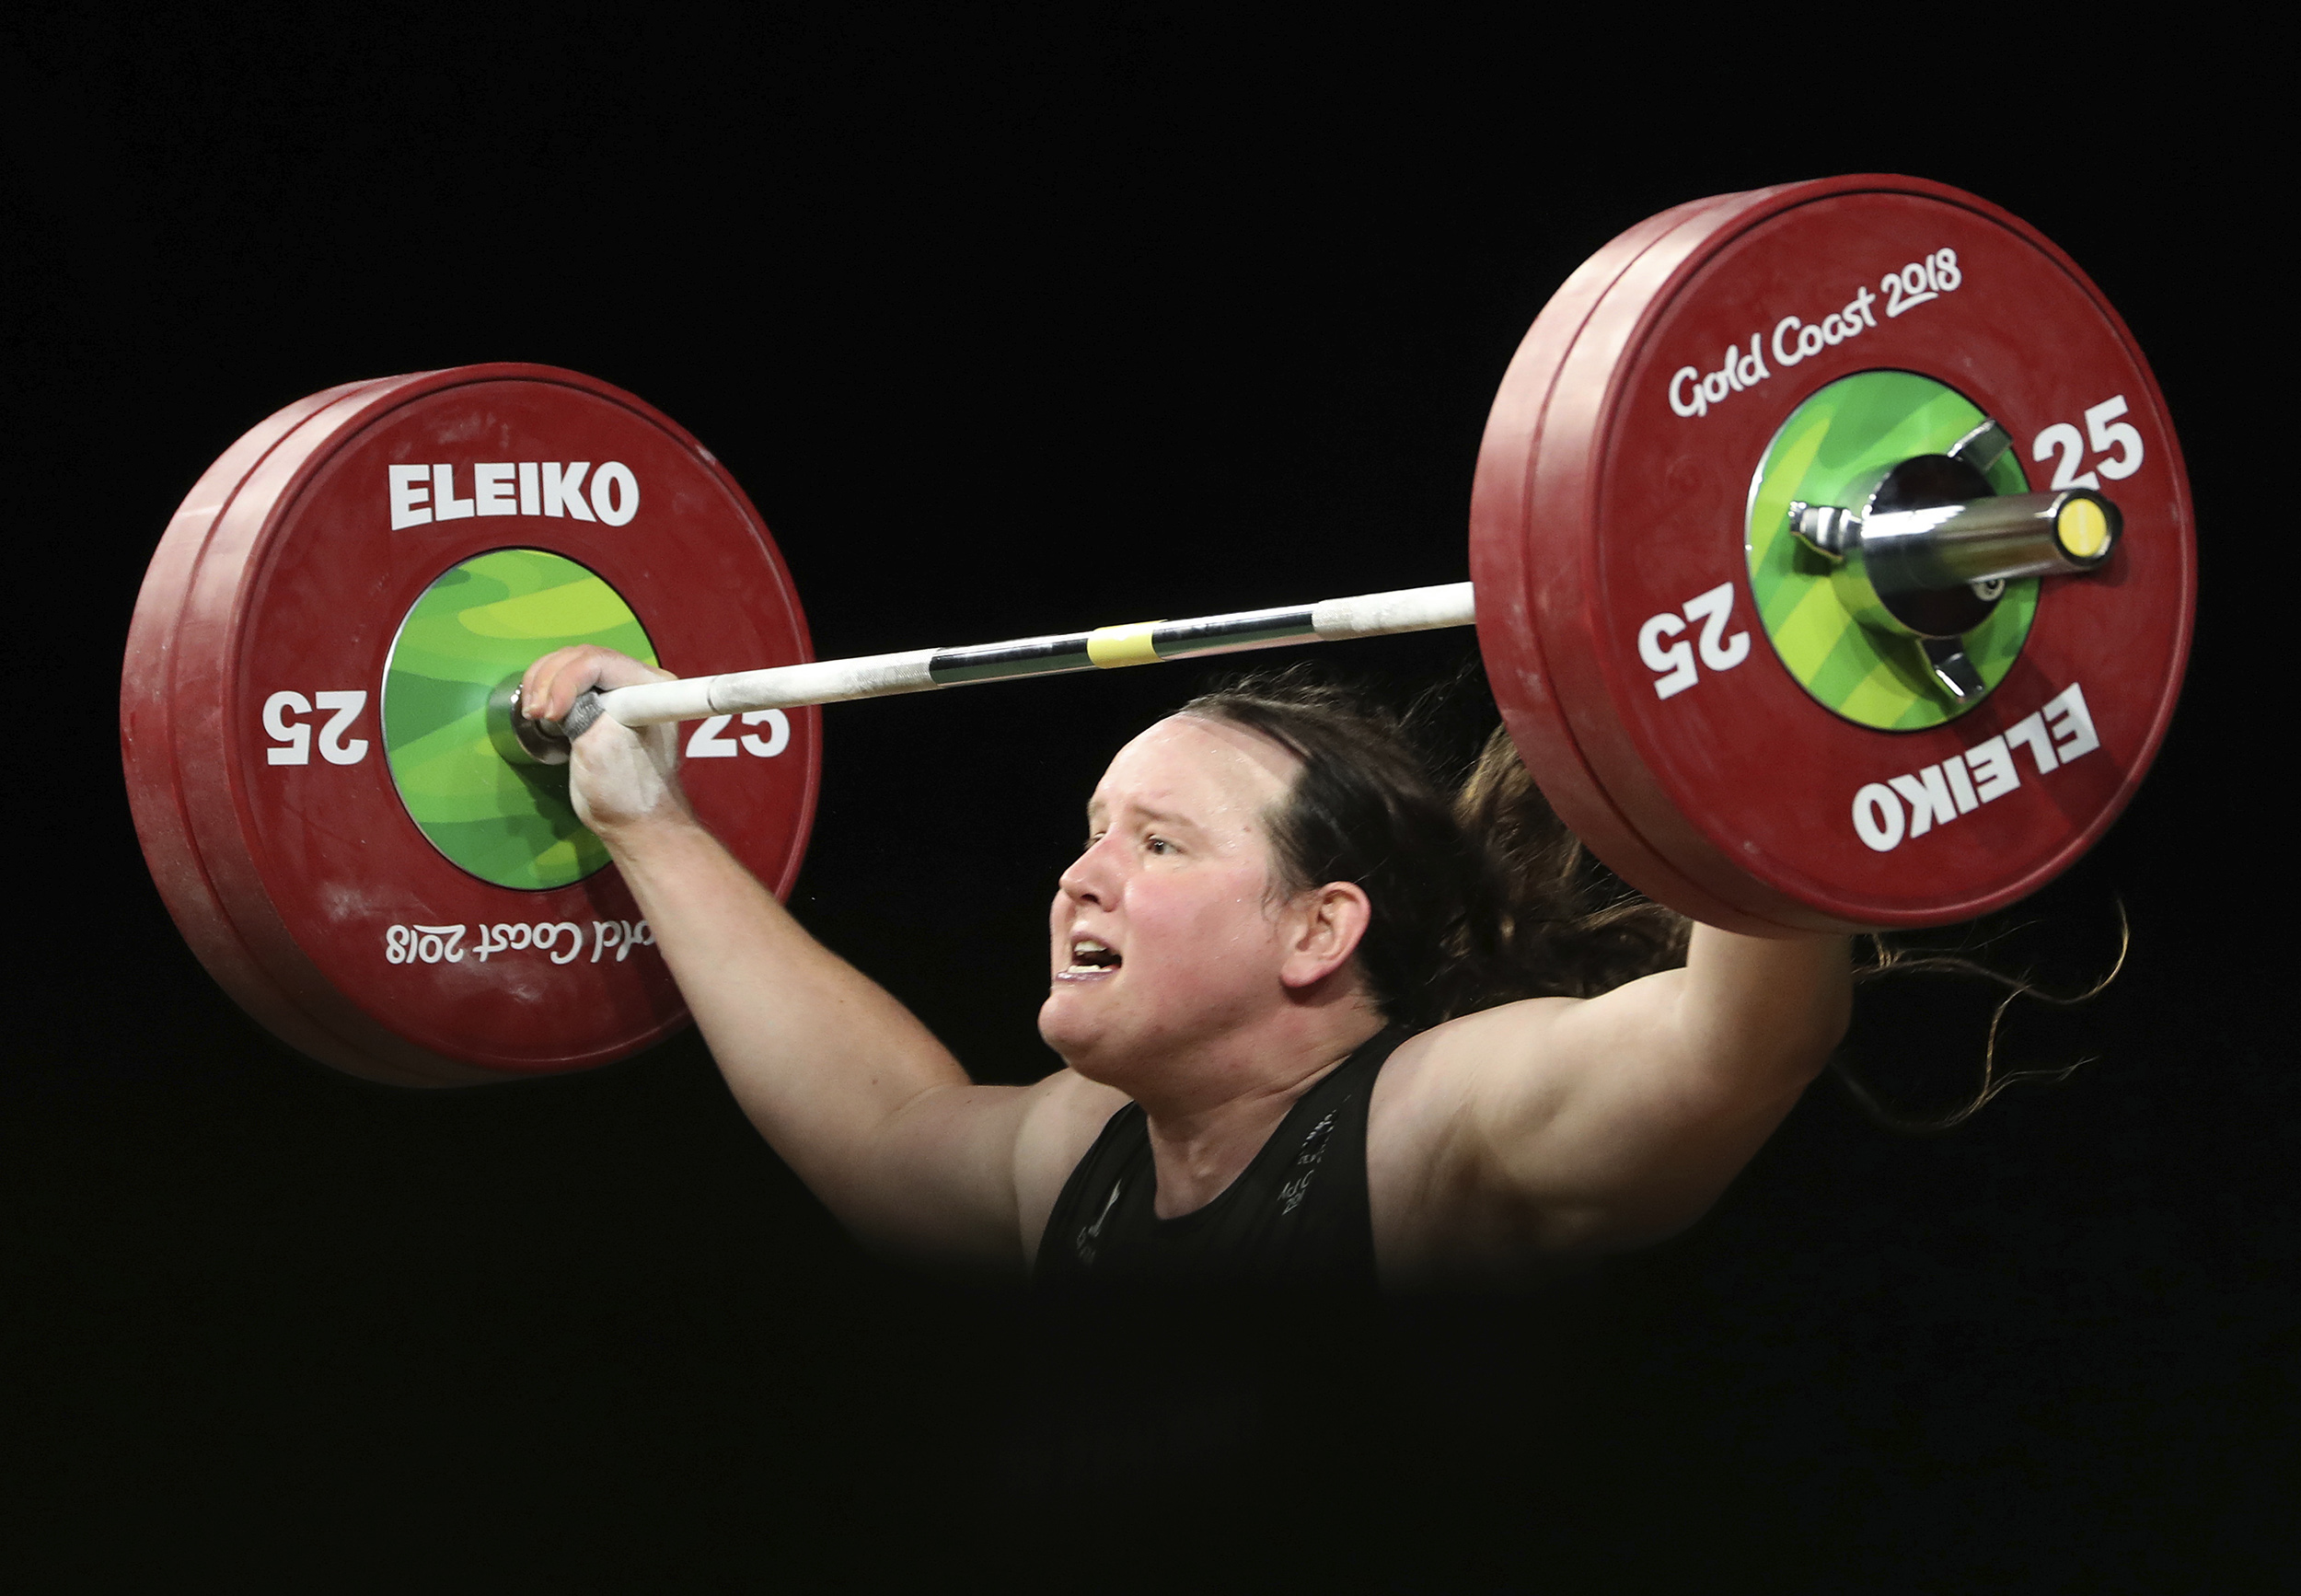 Olympics committee backs transgender weightlifter, prompting criticism